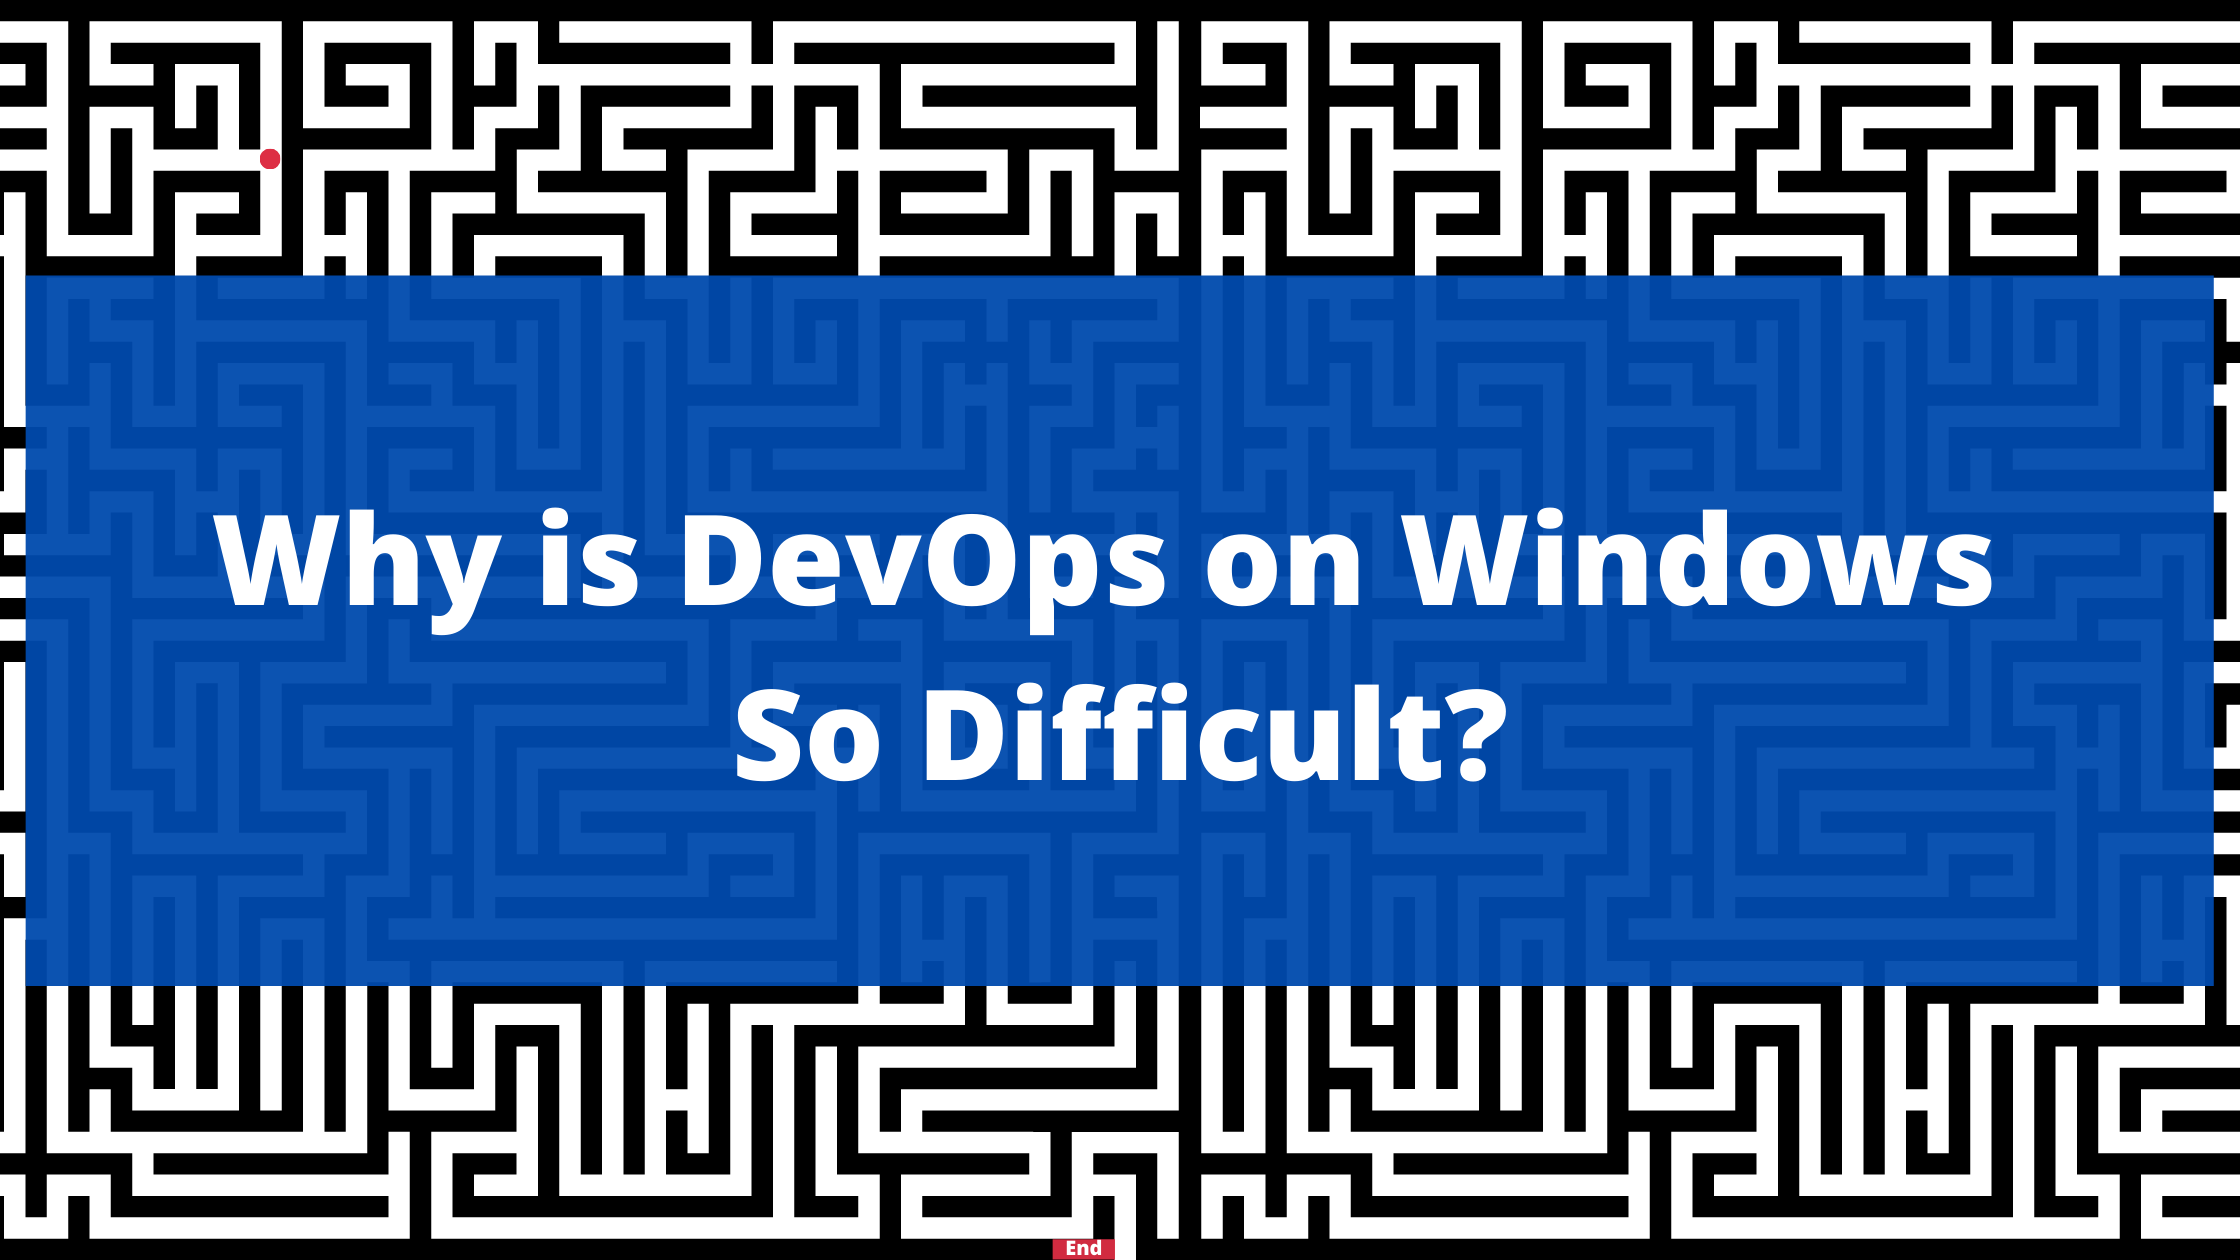 Why is DevOps on Windows so Difficult?